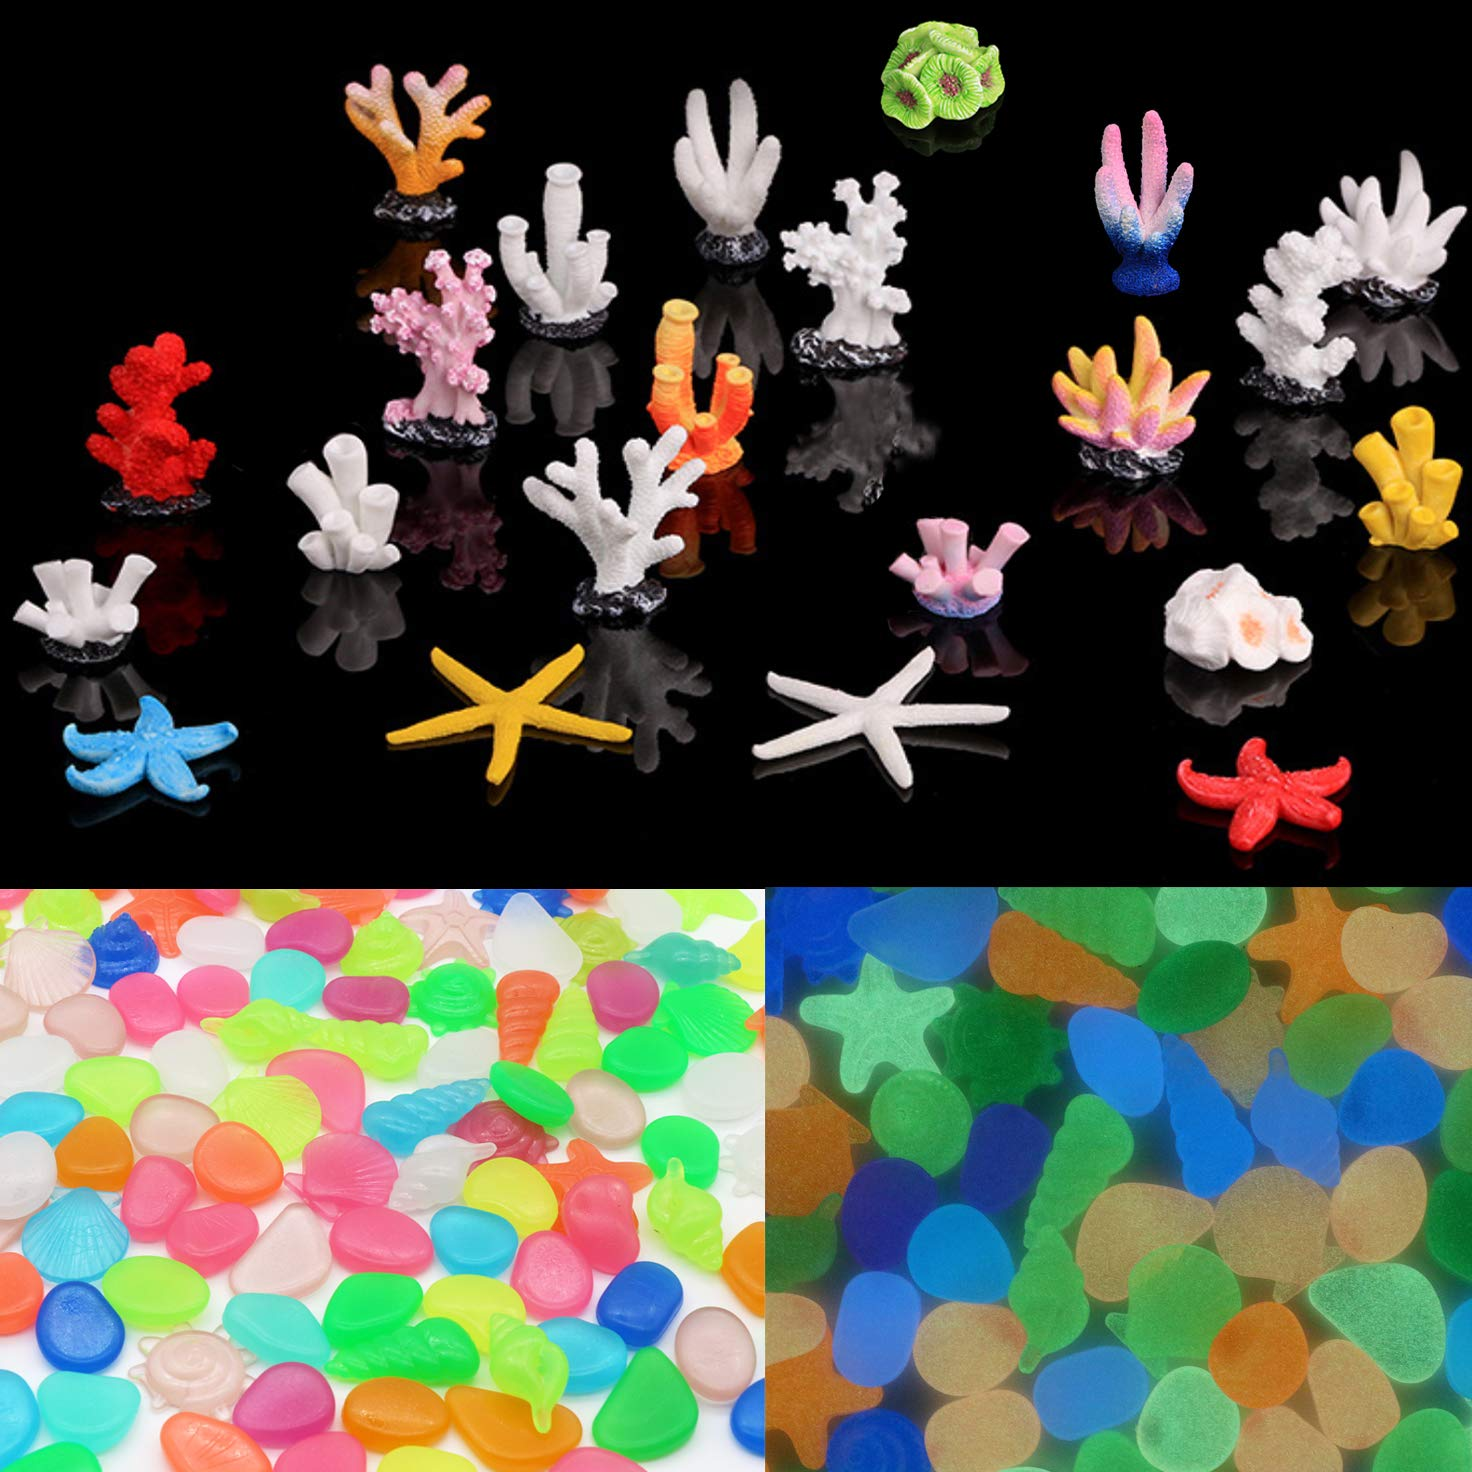 SunKni 22 Pack Resin Coral & 28 Pack Glow in The Dark Pebble Stone for Fish Tank Aquarium Decorations